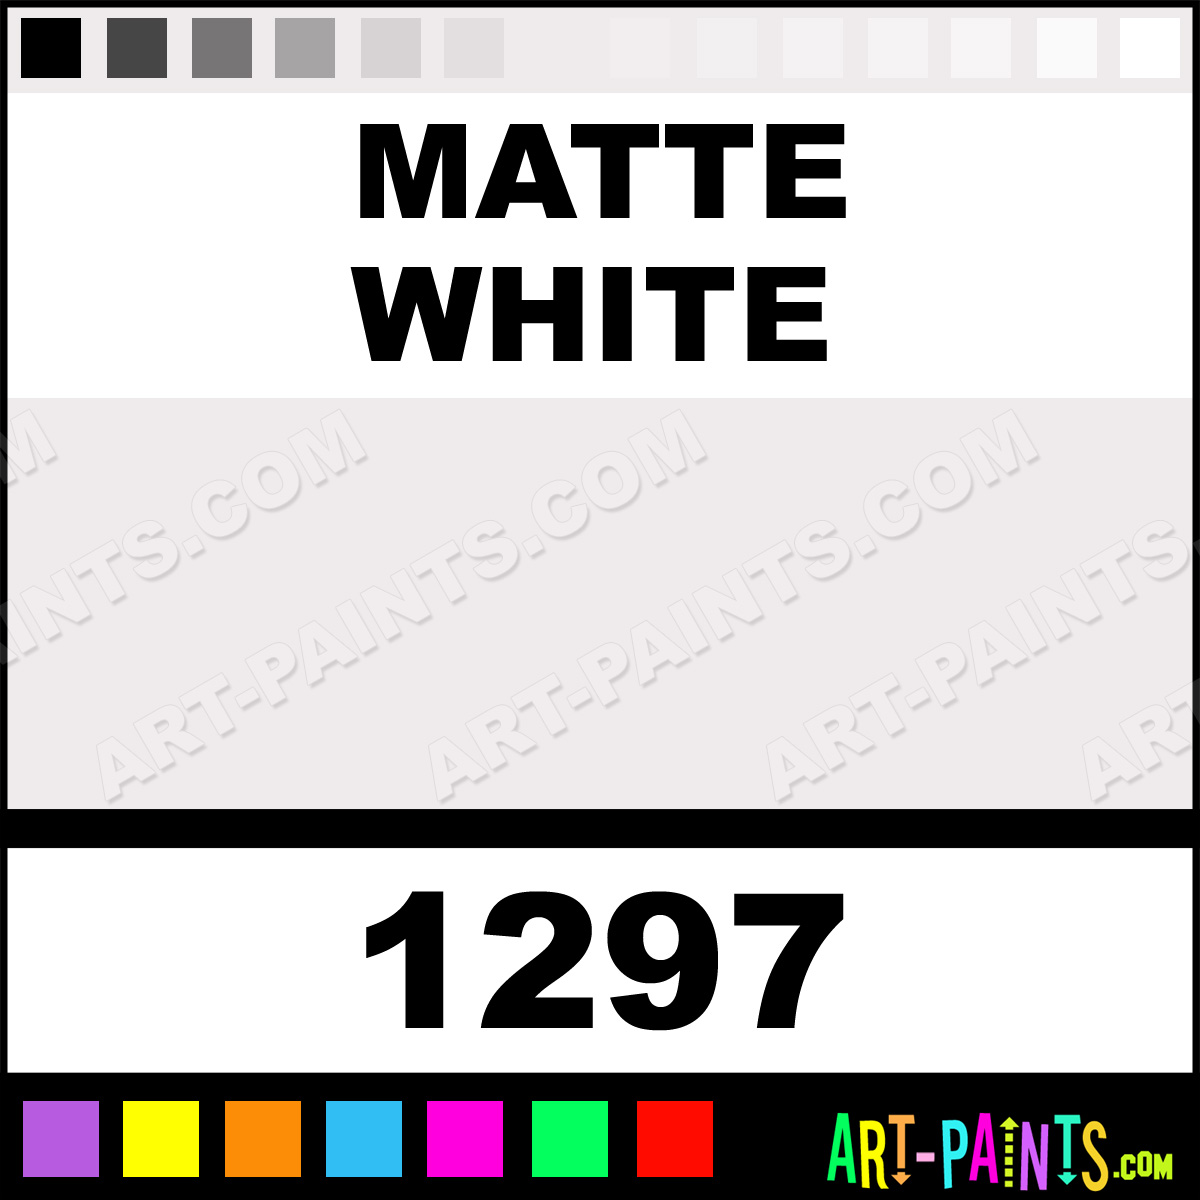 Matte white exterior acrylic paints 1297 matte white paint matte white color artistic - Exterior wood paint matt pict ...